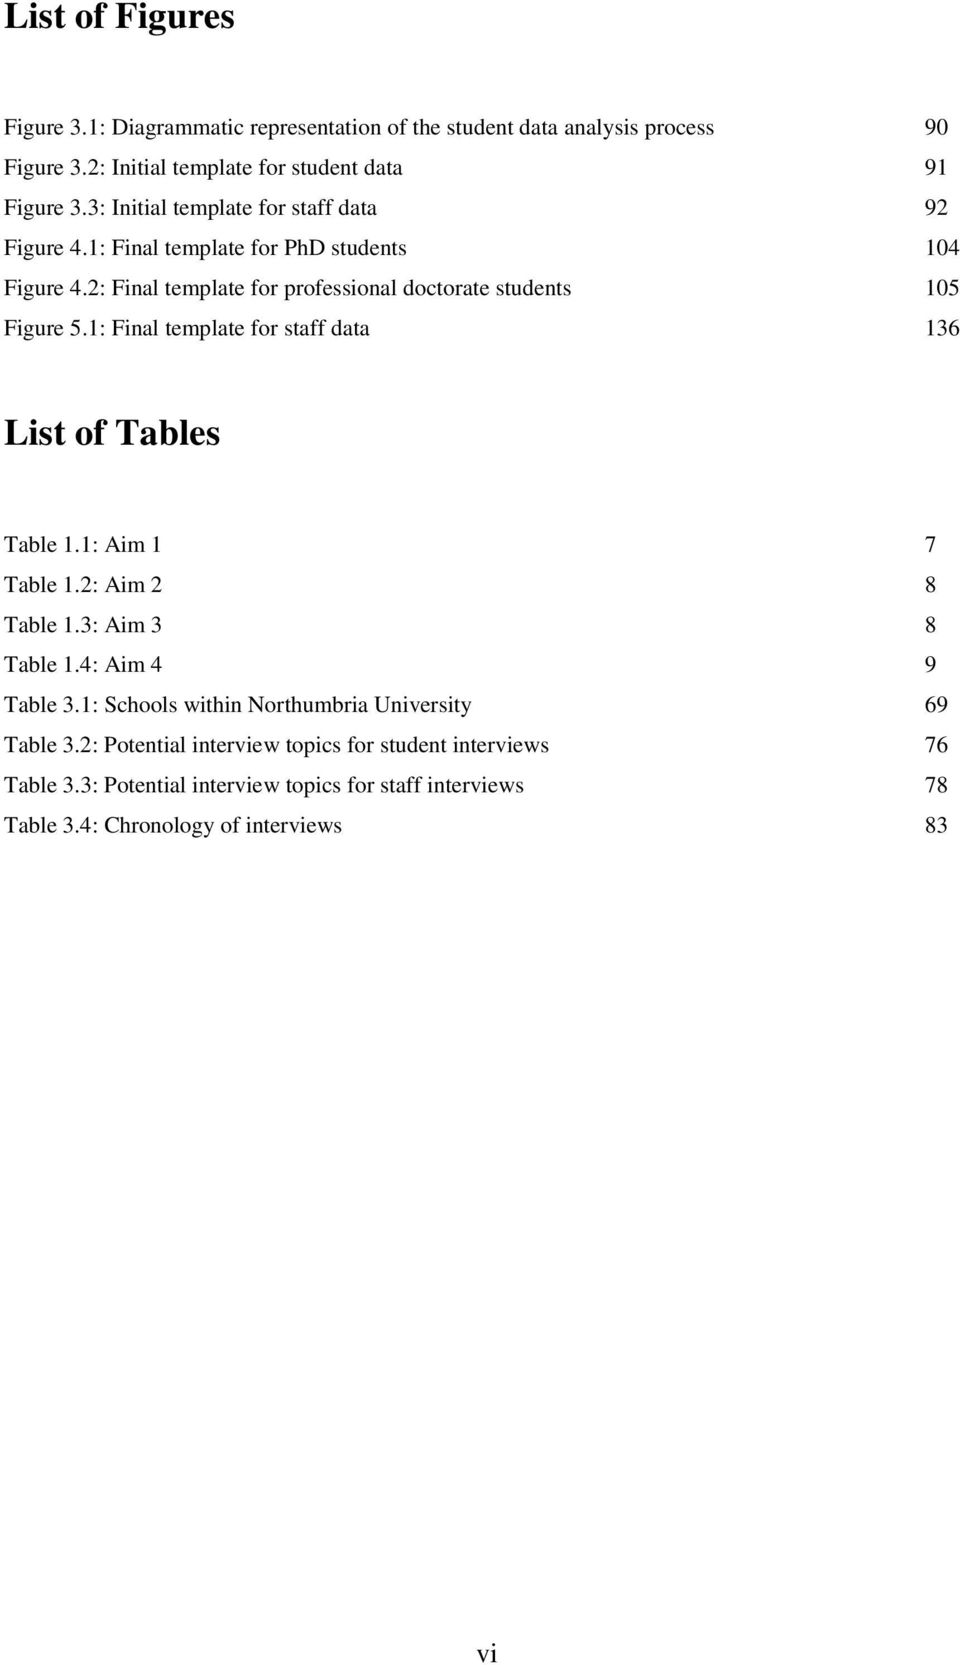 1: Final template for staff data 136 List of Tables Table 1.1: Aim 1 7 Table 1.2: Aim 2 8 Table 1.3: Aim 3 8 Table 1.4: Aim 4 9 Table 3.